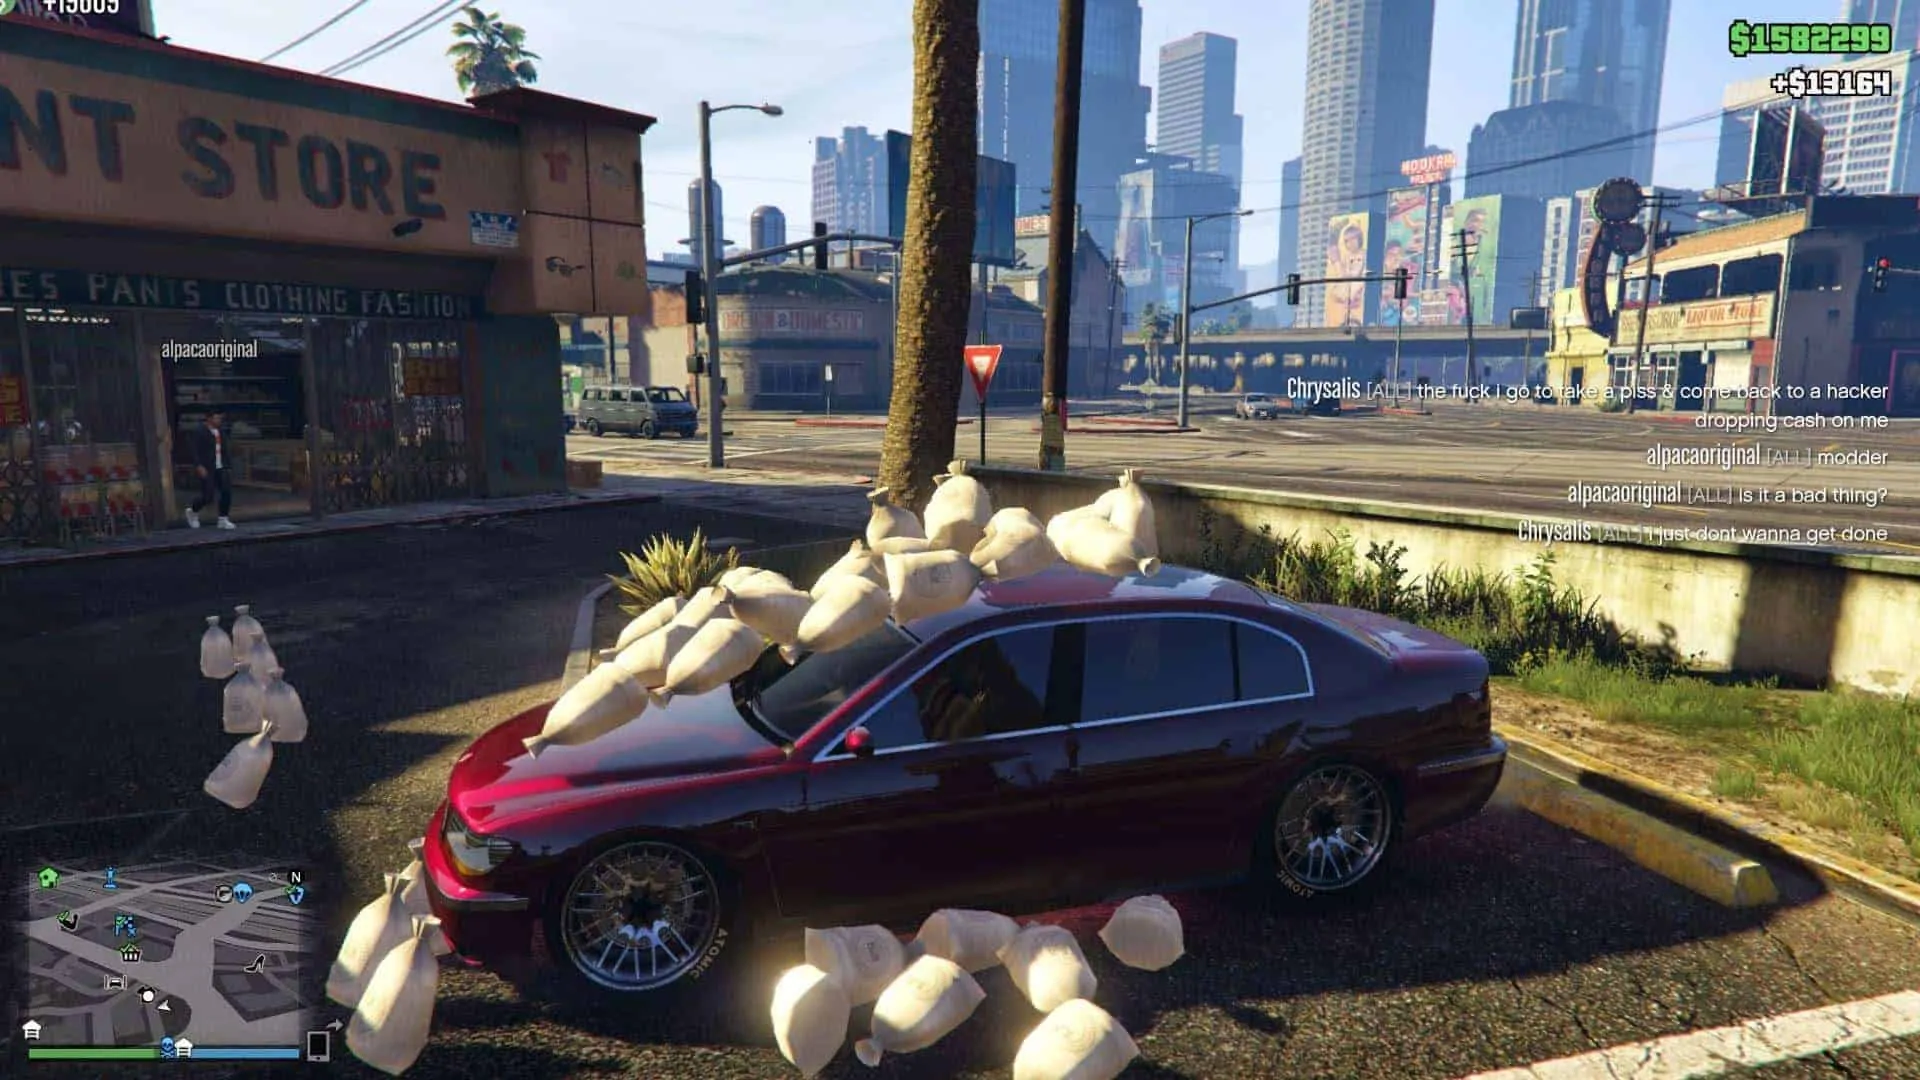 gta v money hacks 2018